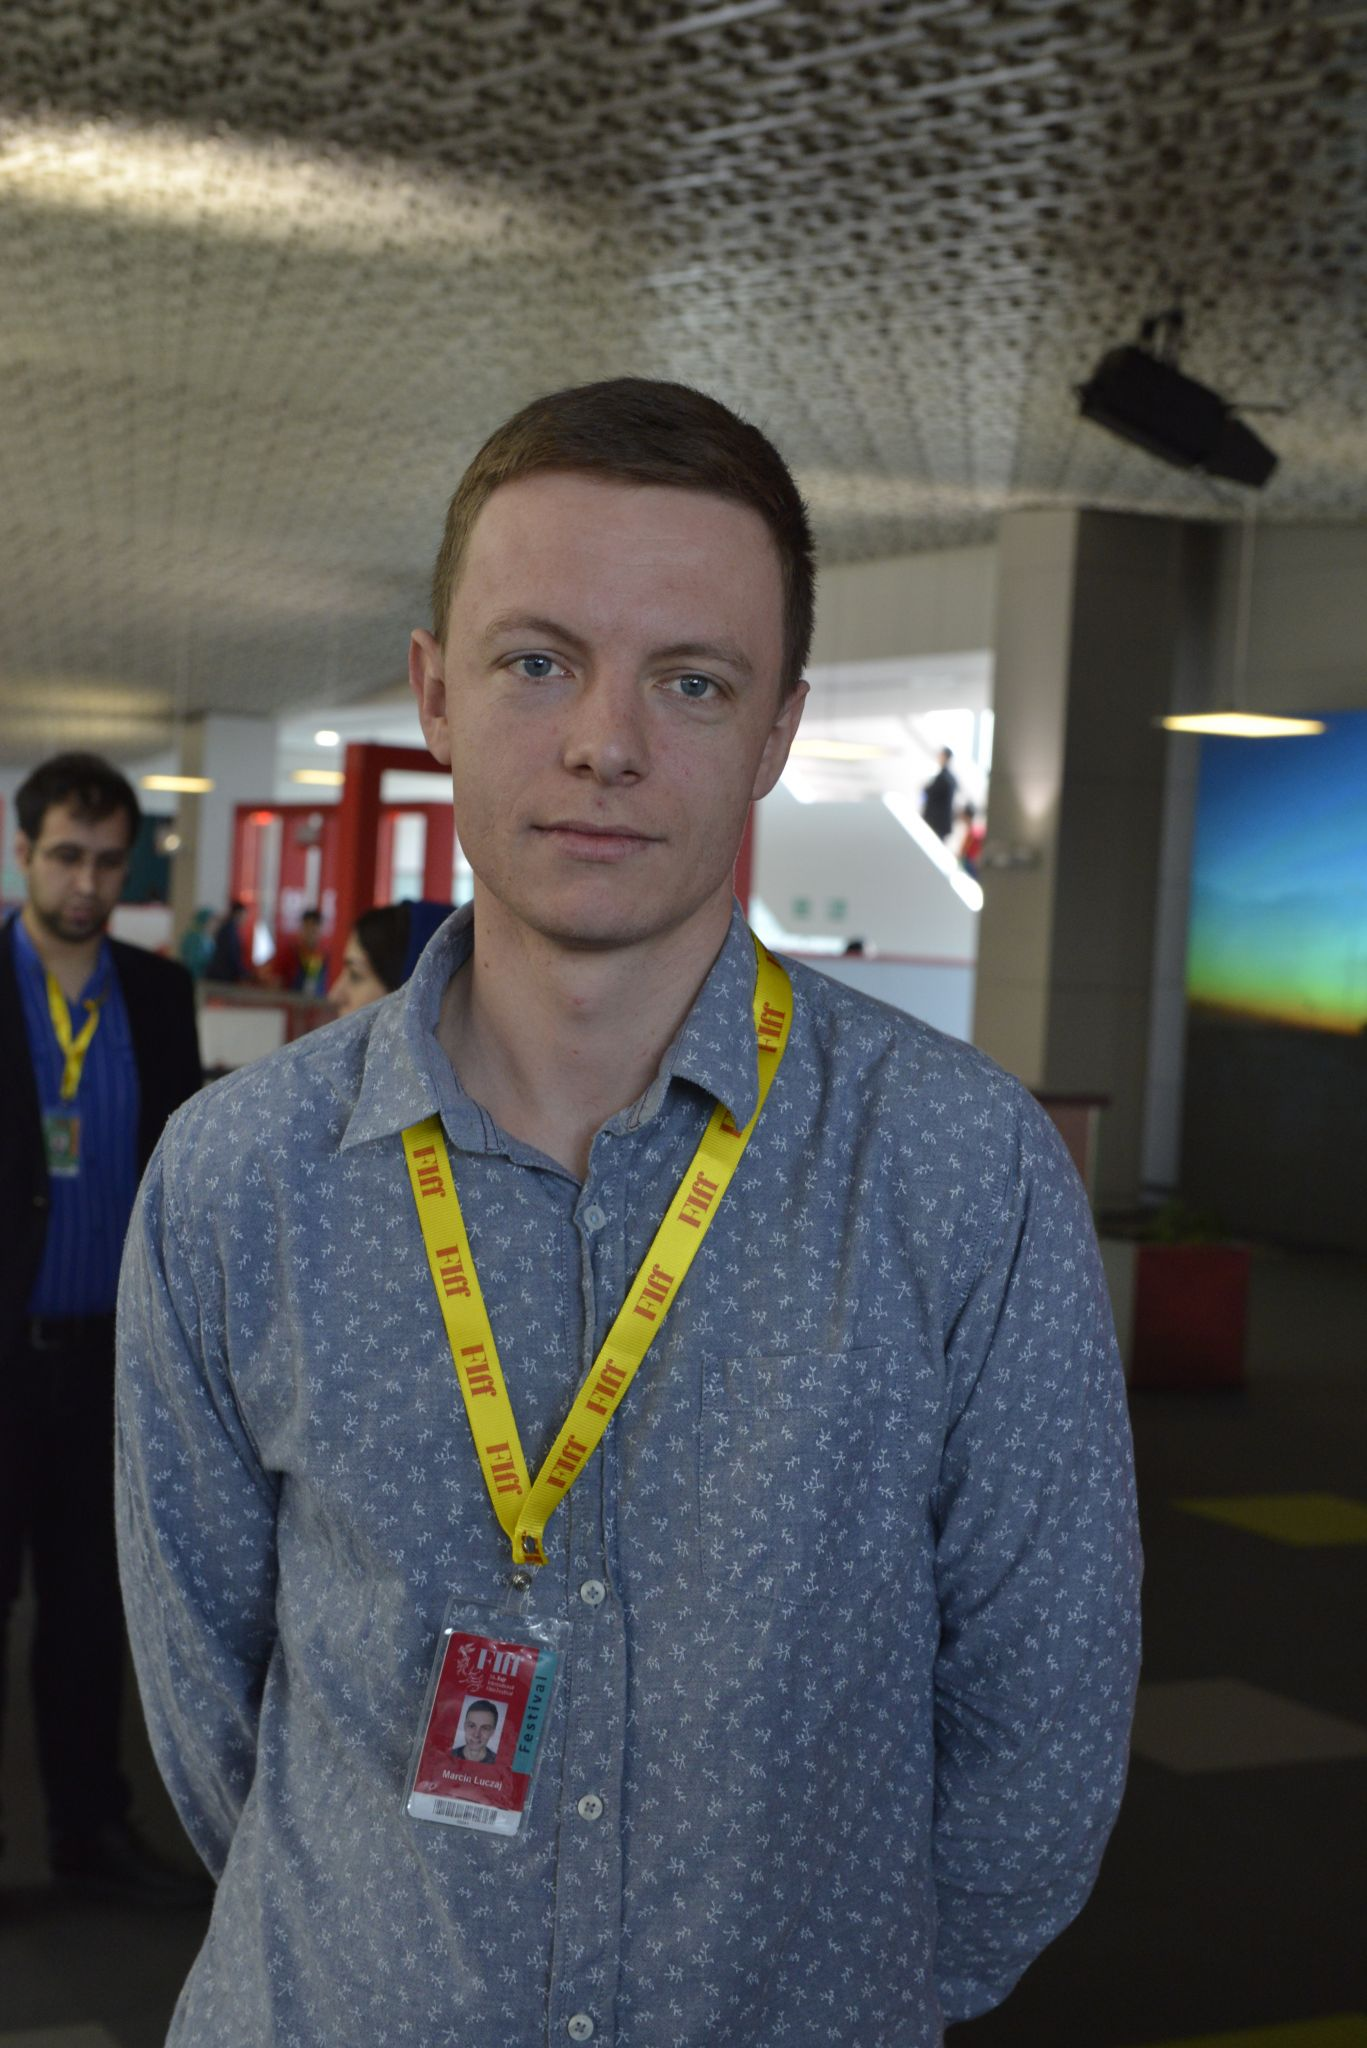 An Interview with Marcin Luczaj, Programmer at Warsaw Film Festival: FIFF looks like festival and film markets in Europe or Unites States